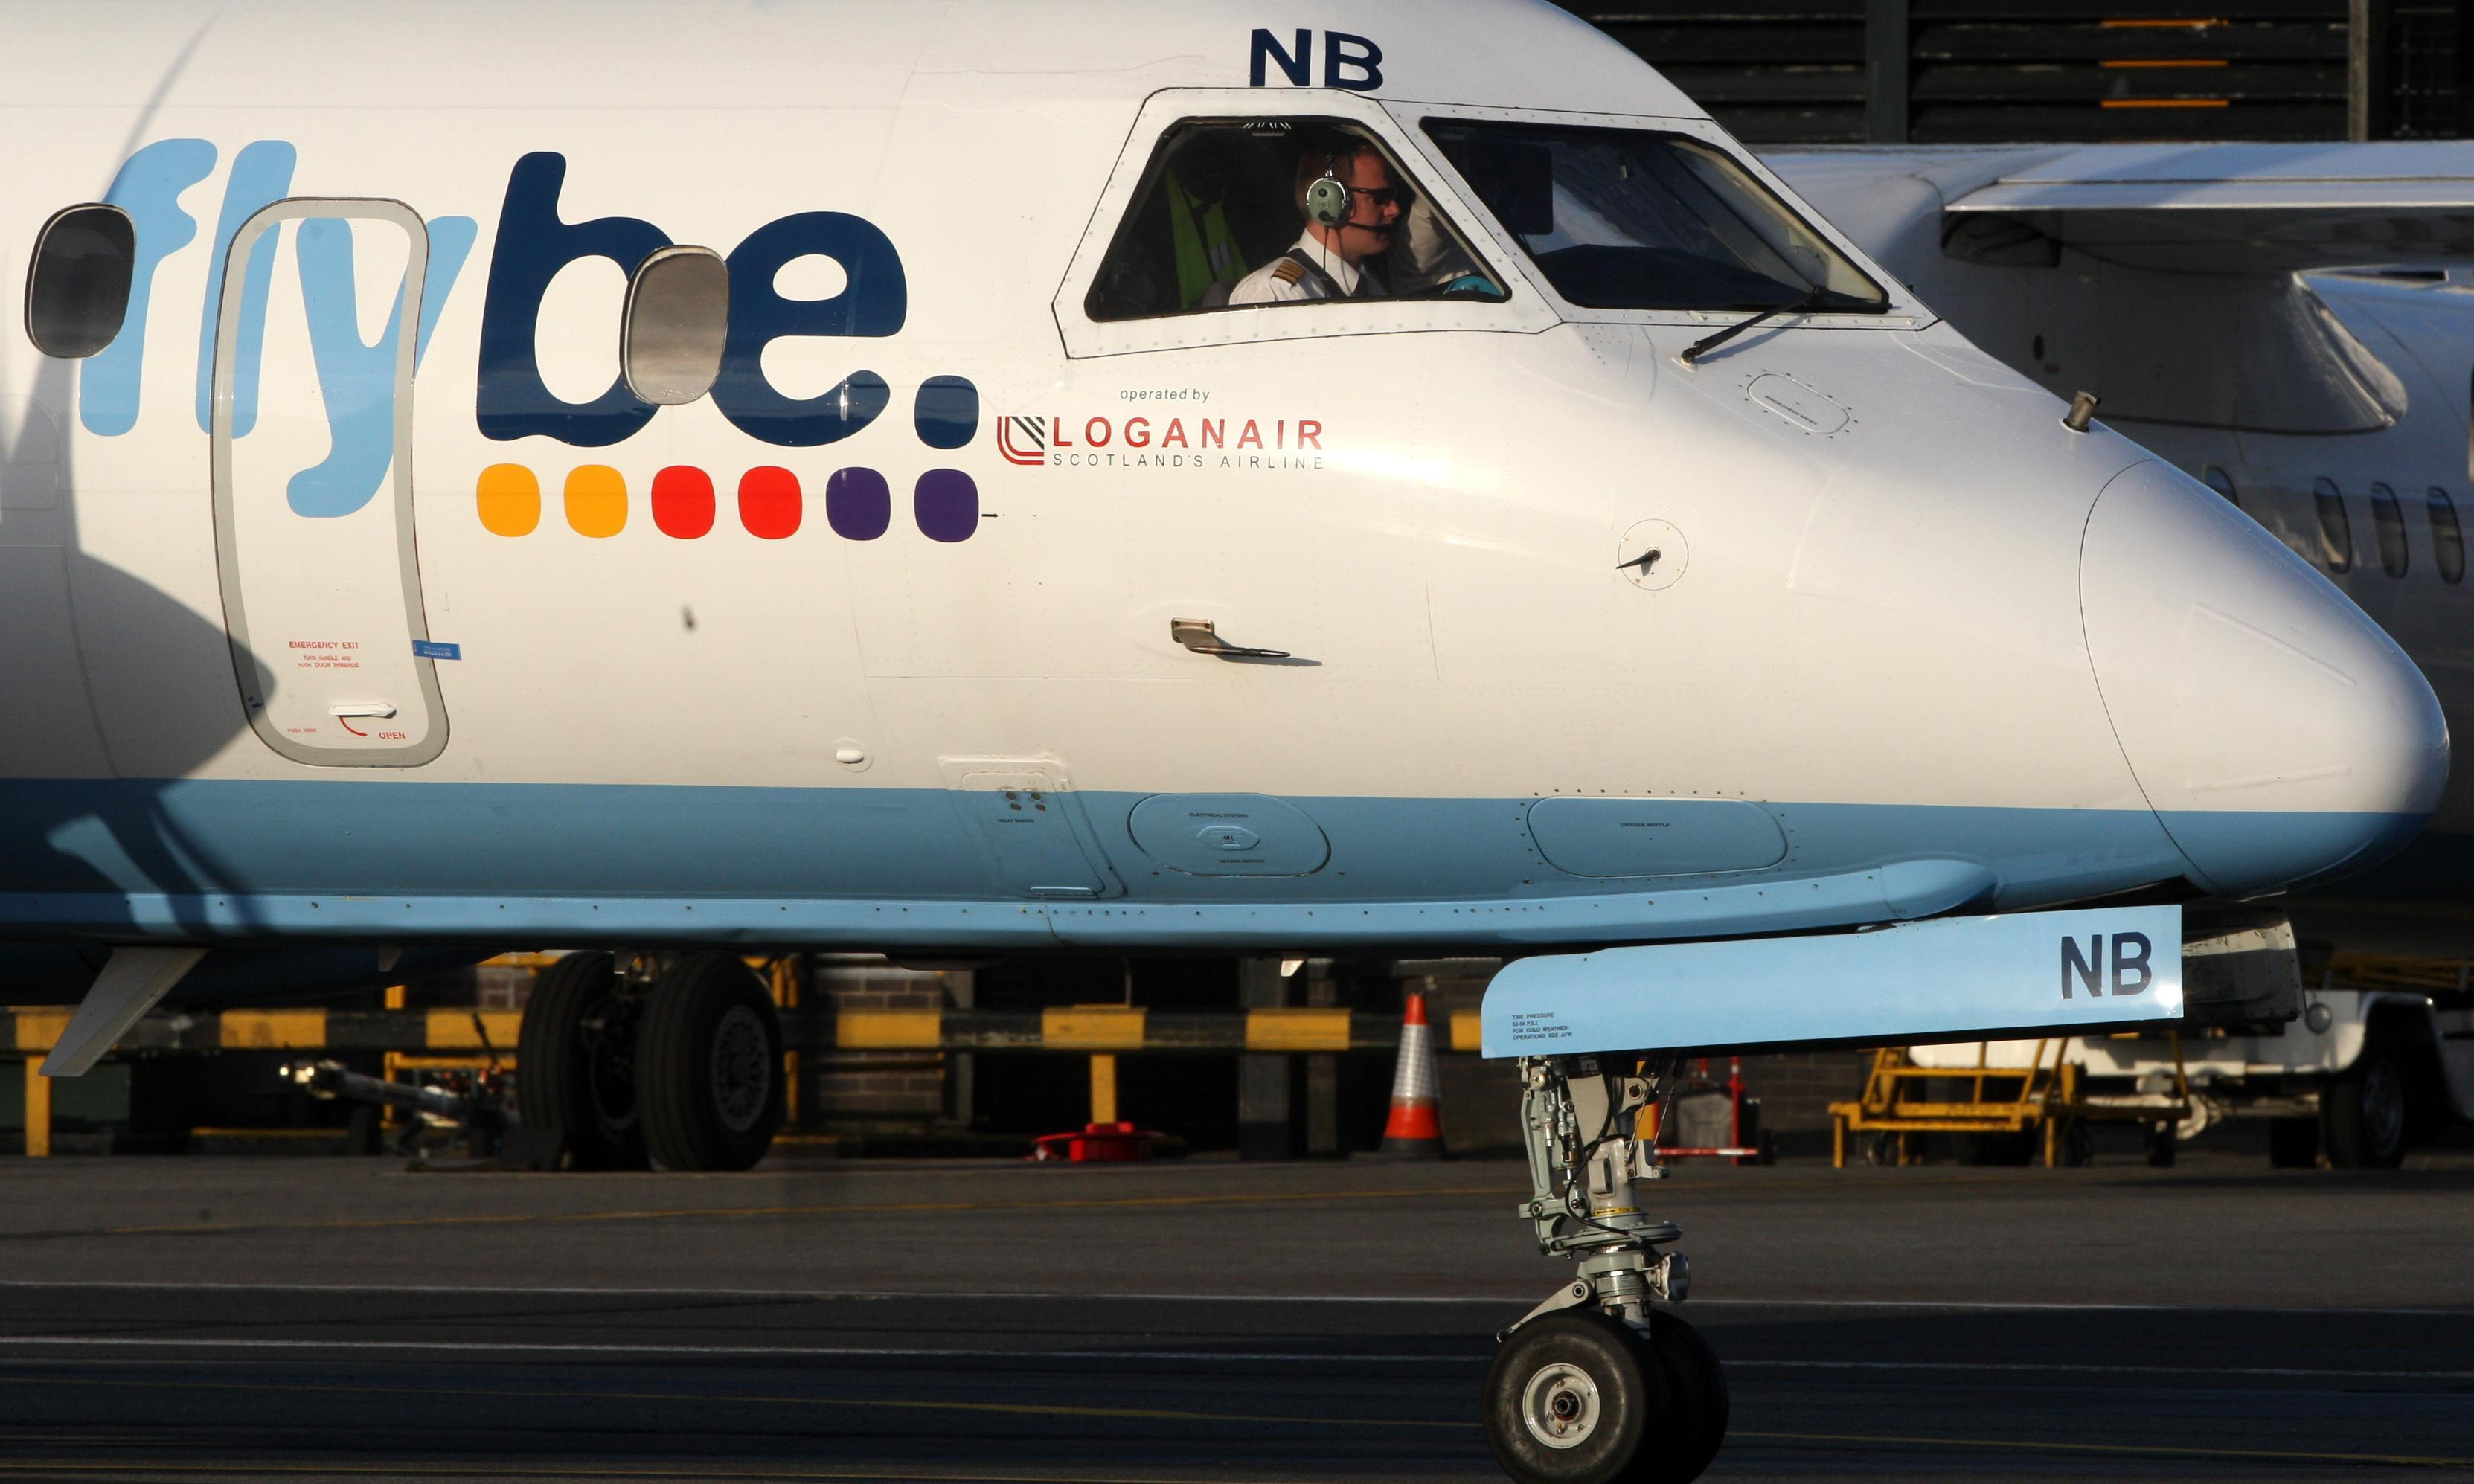 Flybe to stay in air as Virgin Atlantic-led group injects cash